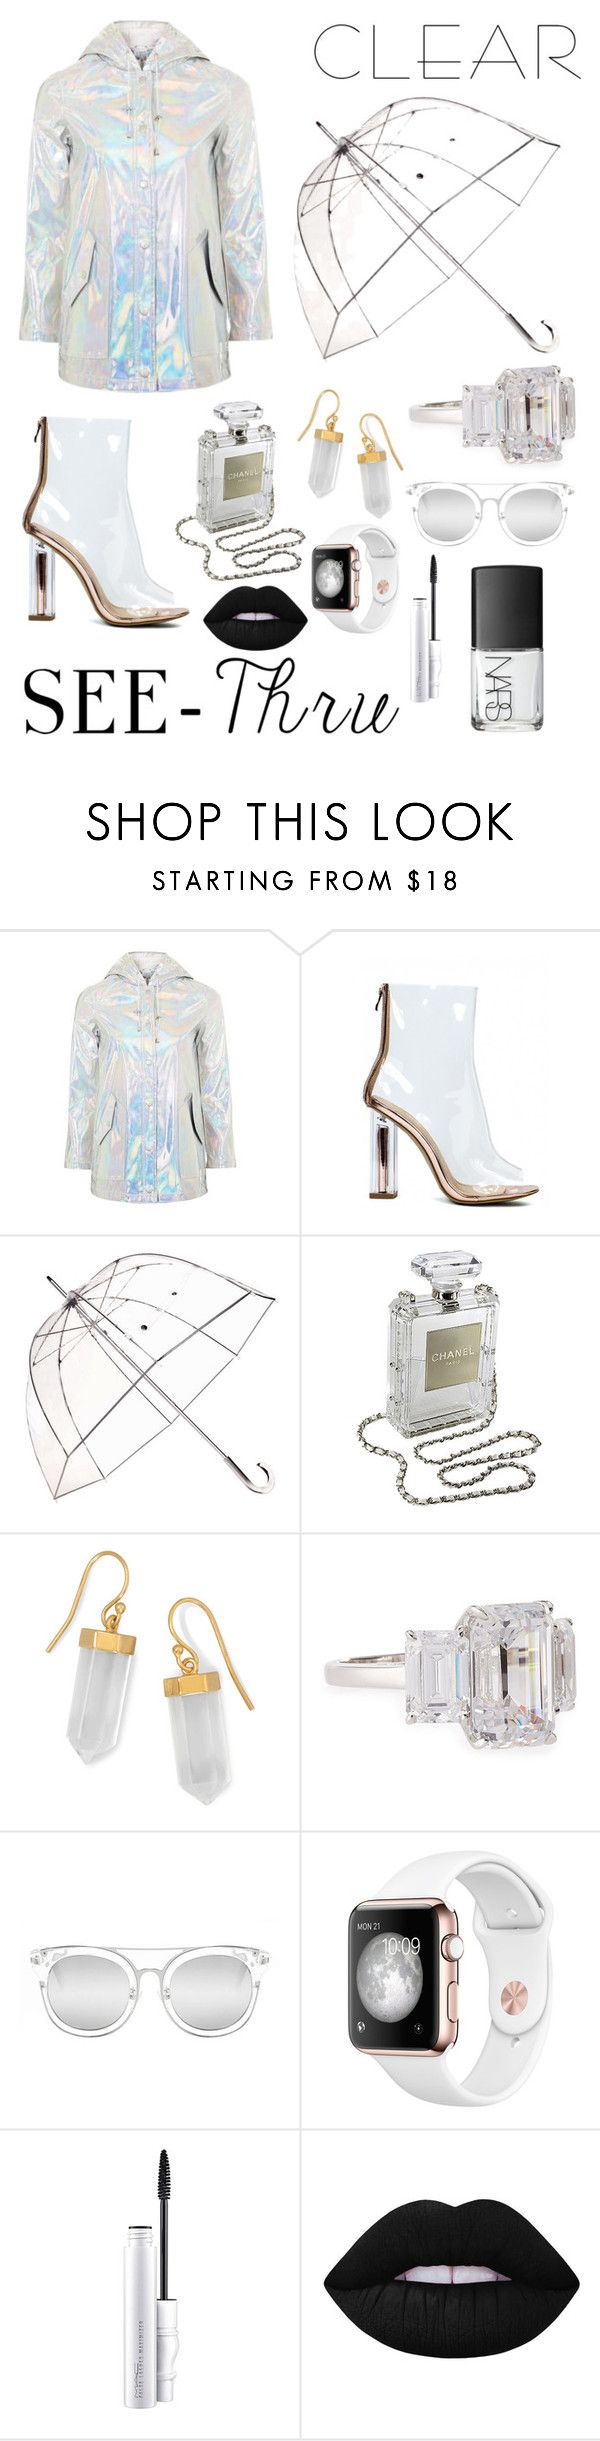 """""""Sem título #344"""" by bia-melo ❤ liked on Polyvore featuring Topshop, Totes, Chanel, BillyTheTree, Fantasia by DeSerio, Quay, MAC Cosmetics, Lime Crime, NARS Cosmetics and clear"""